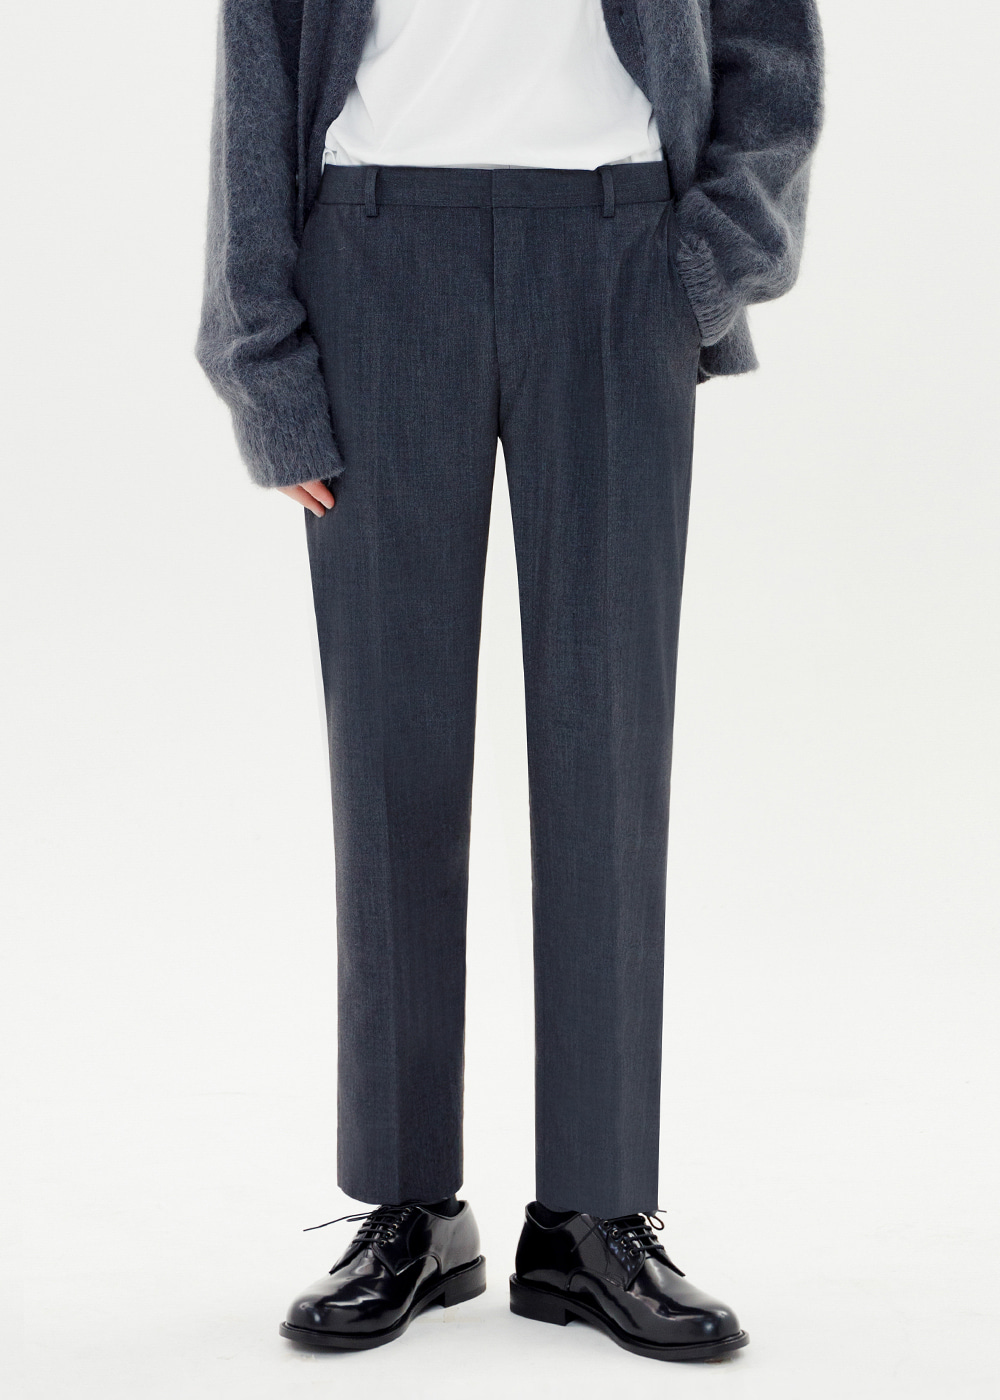 CROP TAPERED SLACKS [CHARCOAL]